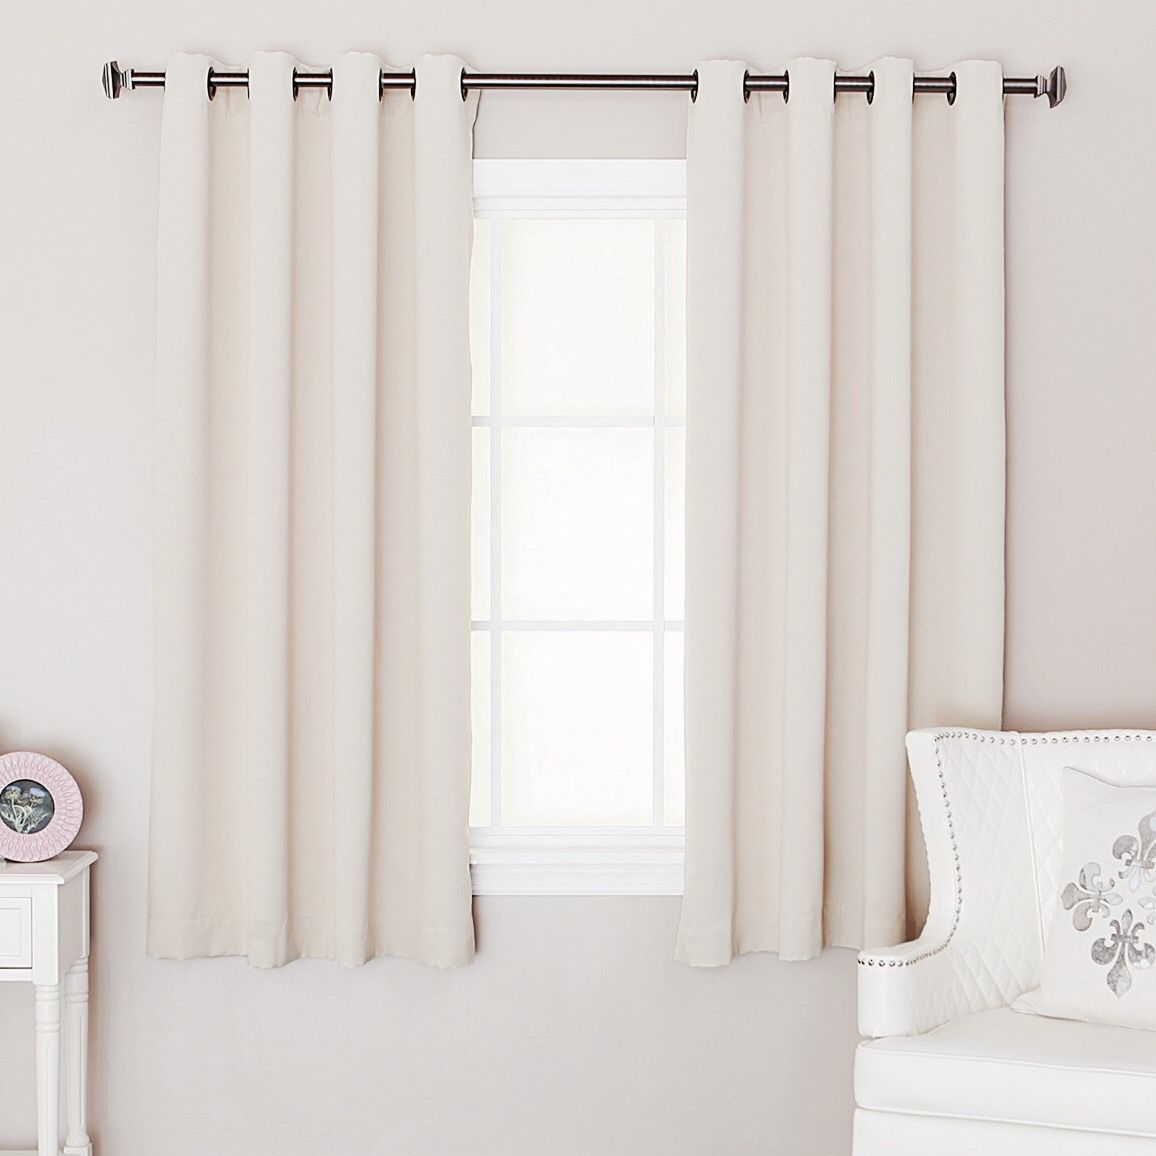 Small window curtain ideas interior pinterest short Curtain ideas for short windows